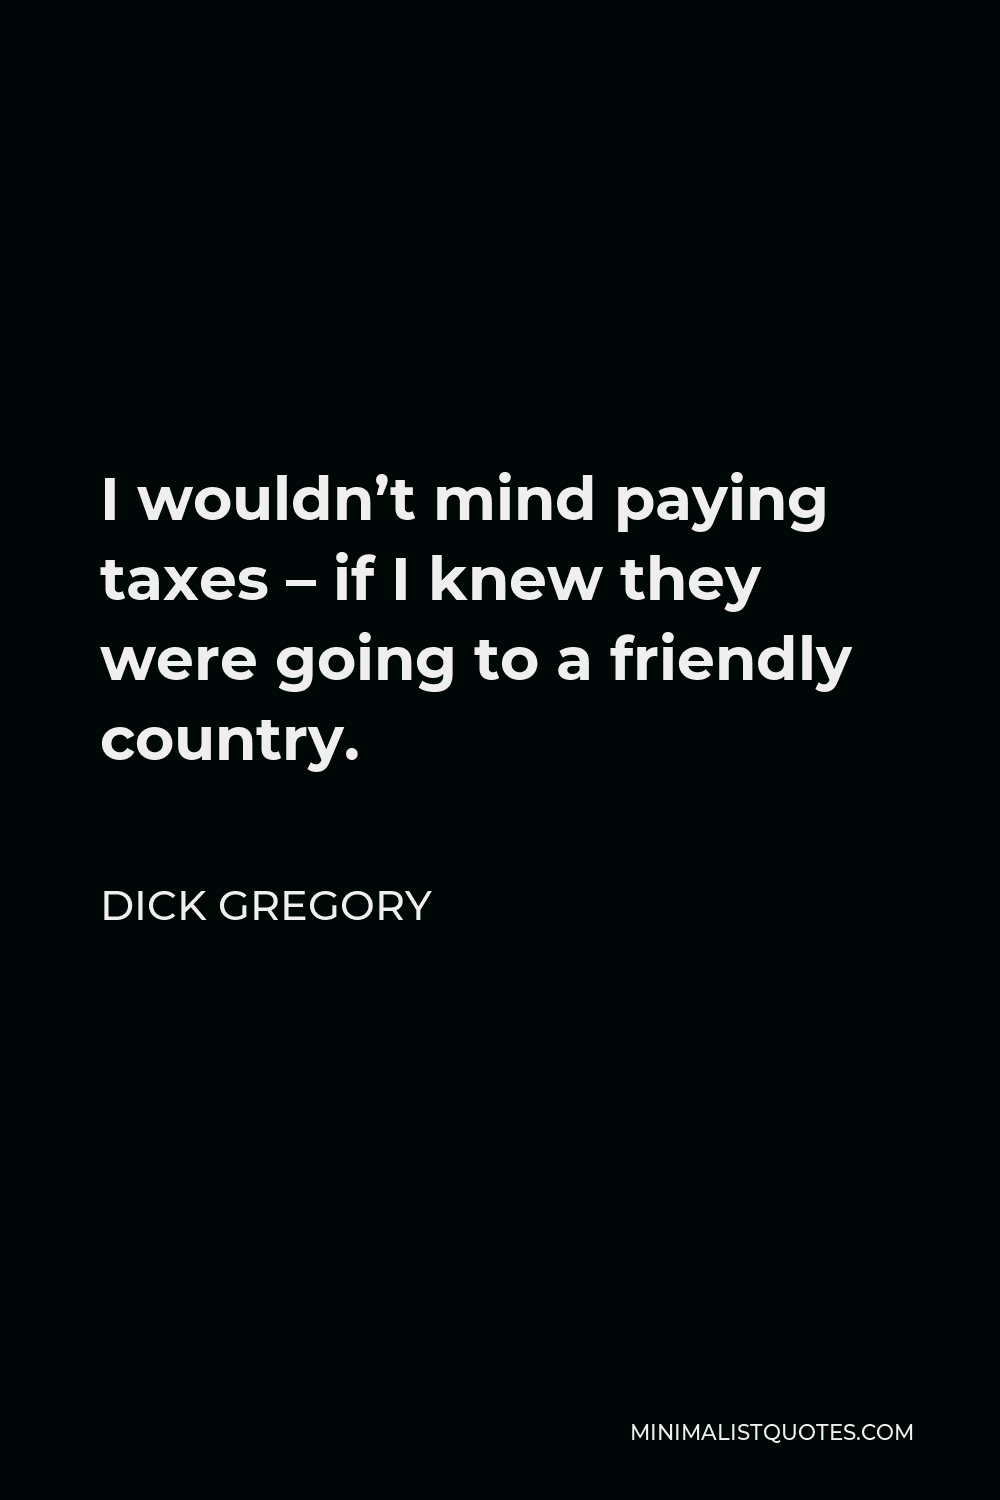 Dick Gregory Quote - I wouldn't mind paying taxes – if I knew they were going to a friendly country.